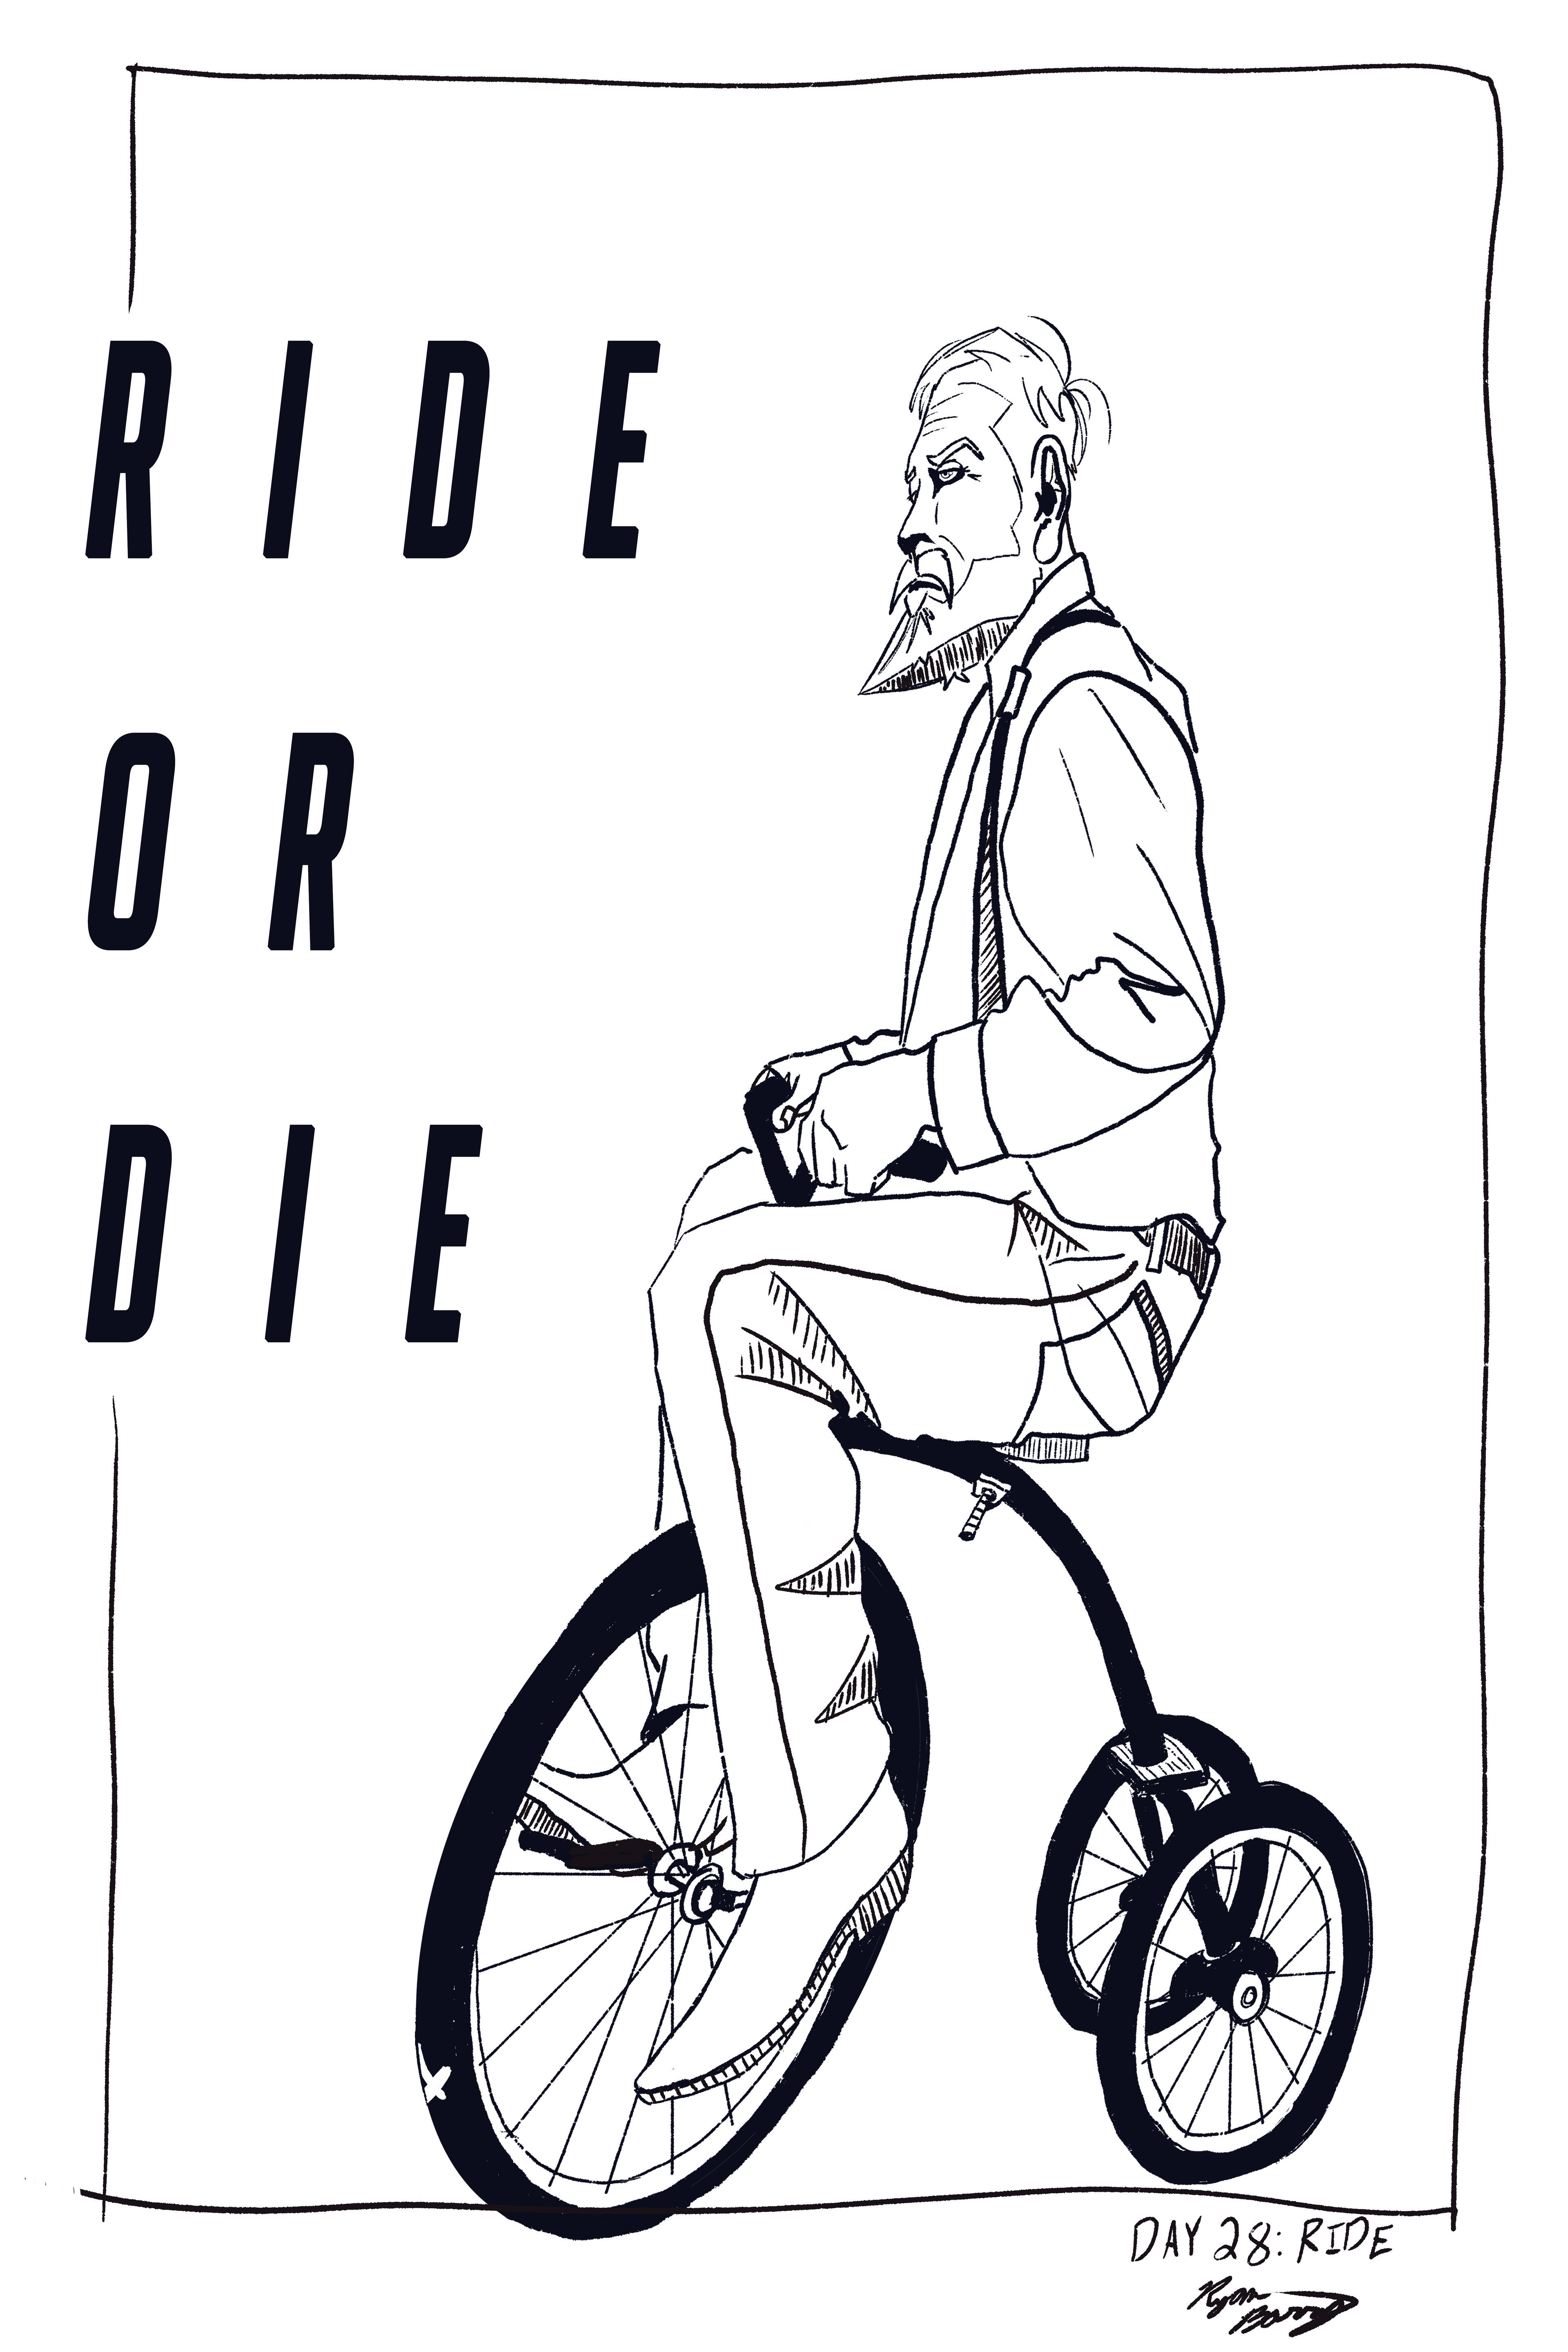 Day 28: Ride